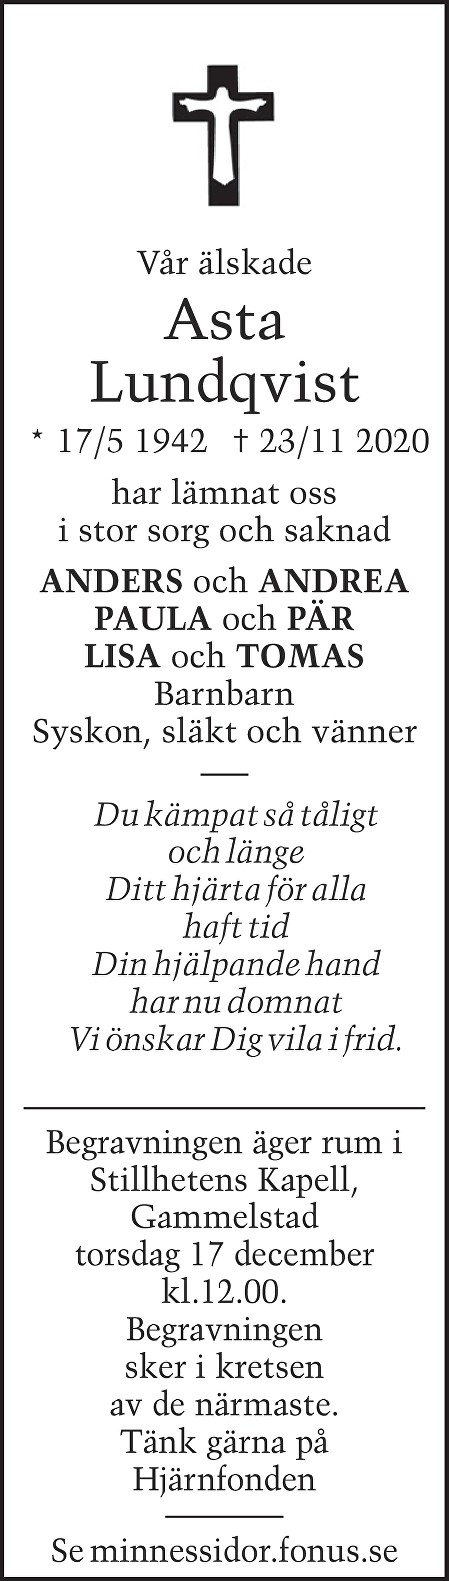 Asta Lundqvist Death notice